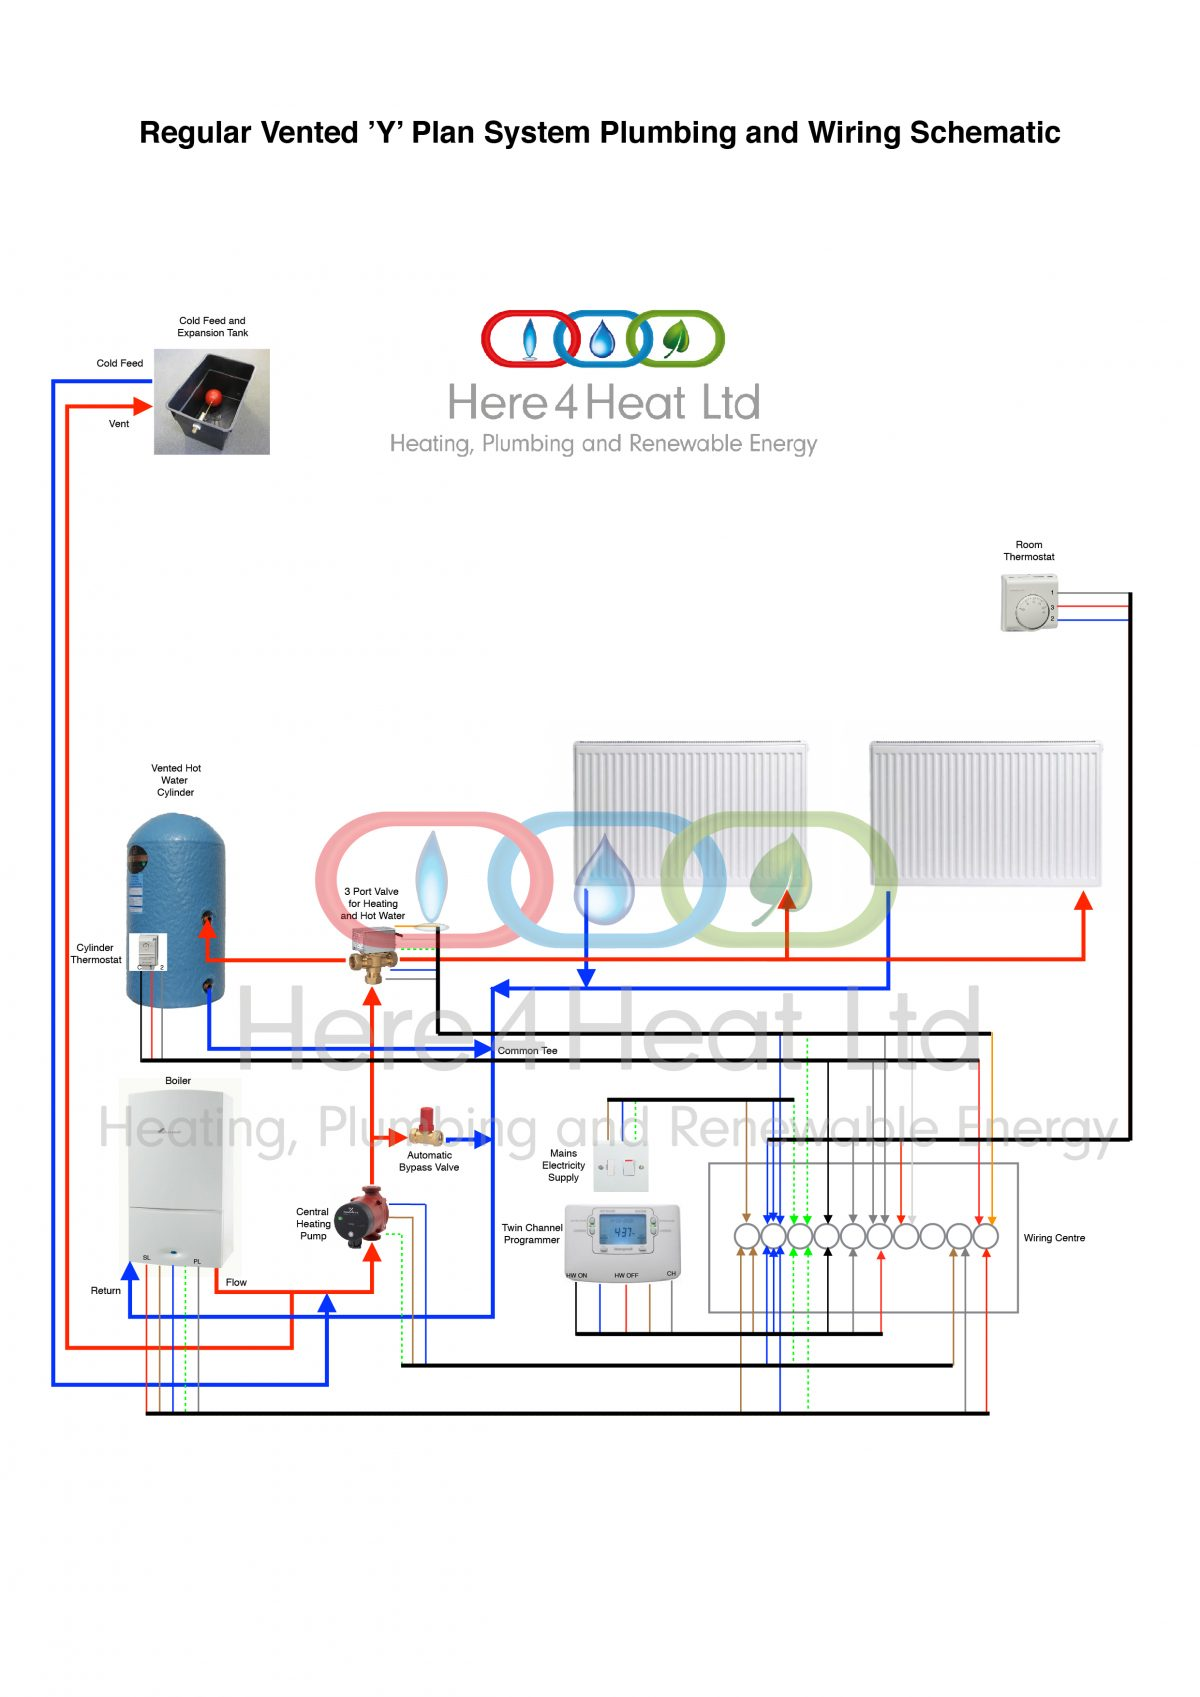 https://here4heat.com/wp-content/uploads/2018/06/Here-4-Heat-Regular-Vented-Y-Plan-Plumbing-and-Wiring-Schematic-Diagram-01-1200x1697.jpg